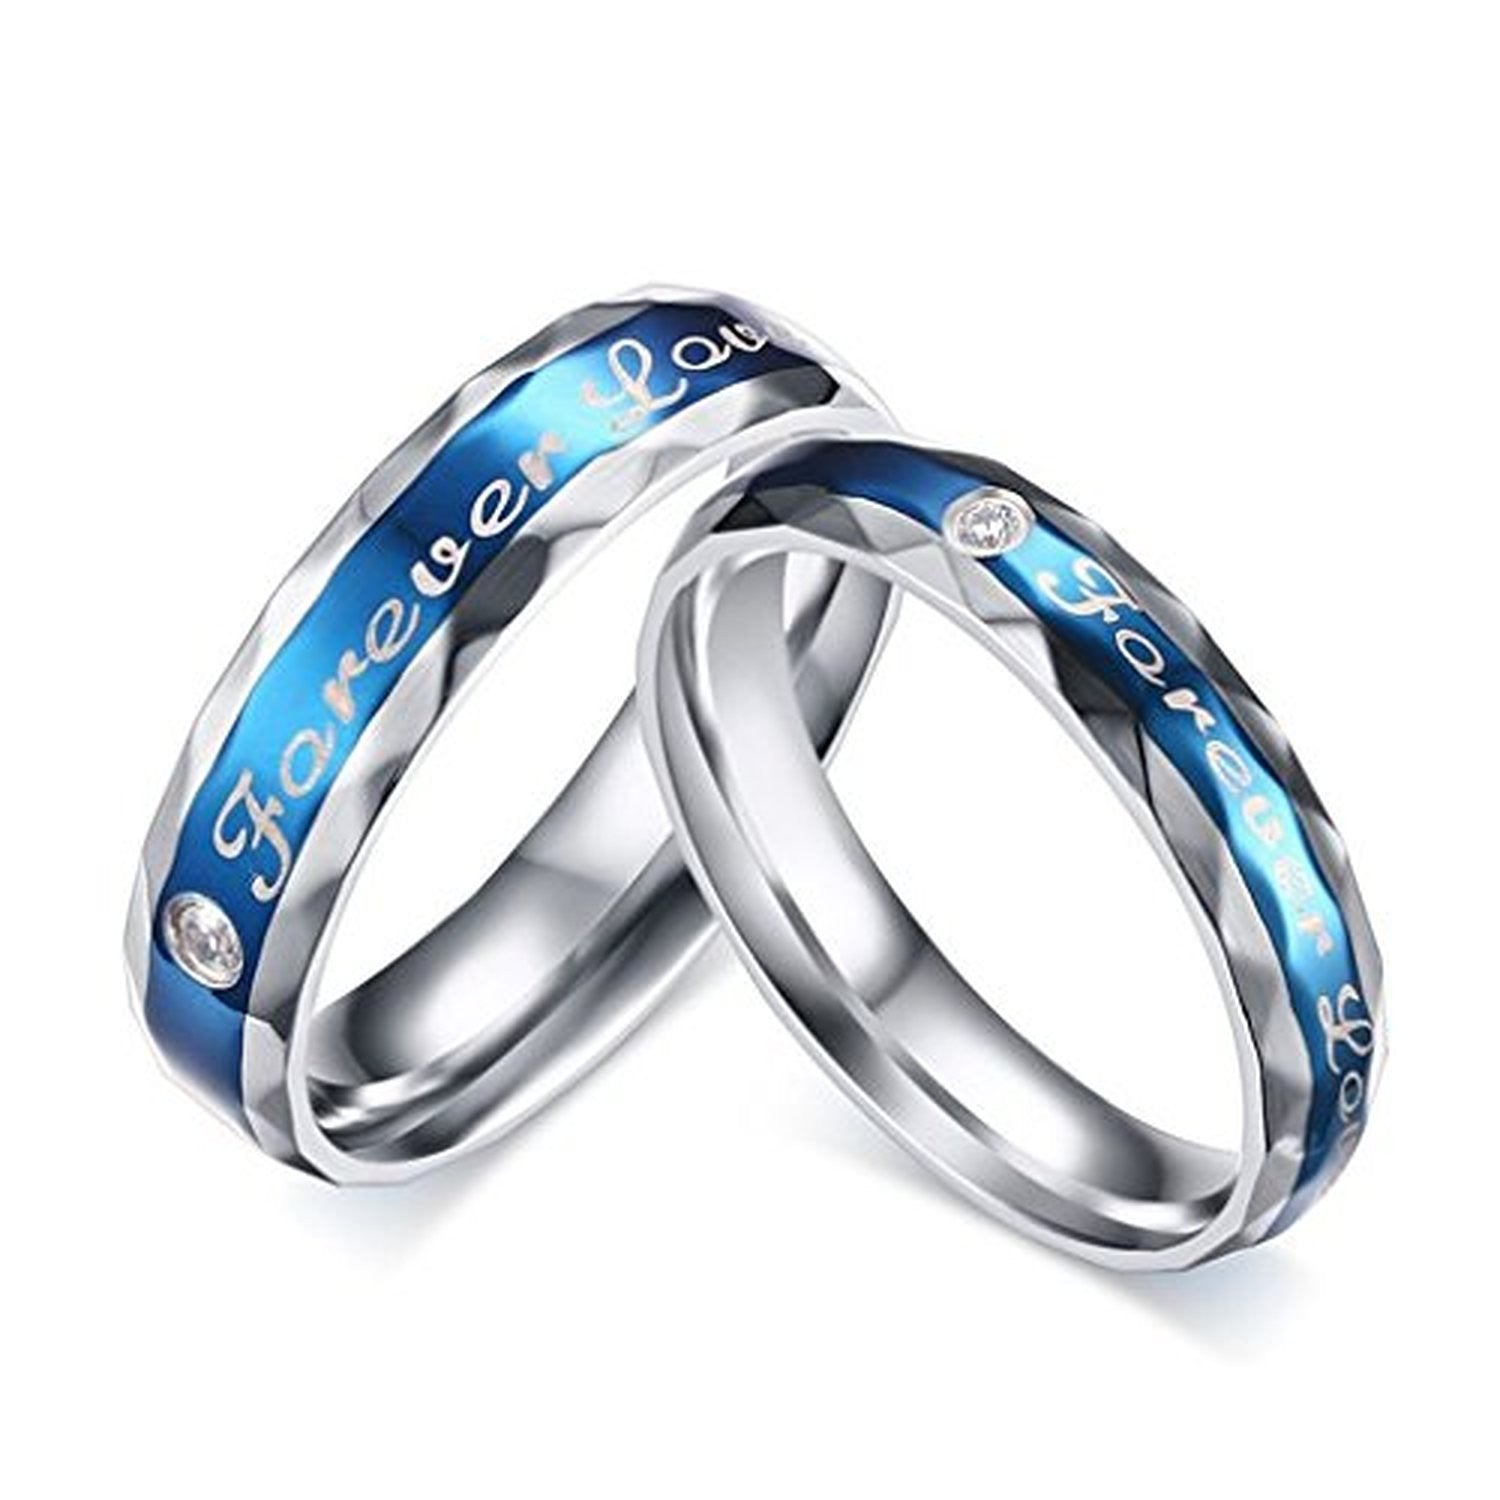 abacus s products steel men series rings personalized evermarker wedding titanium ring